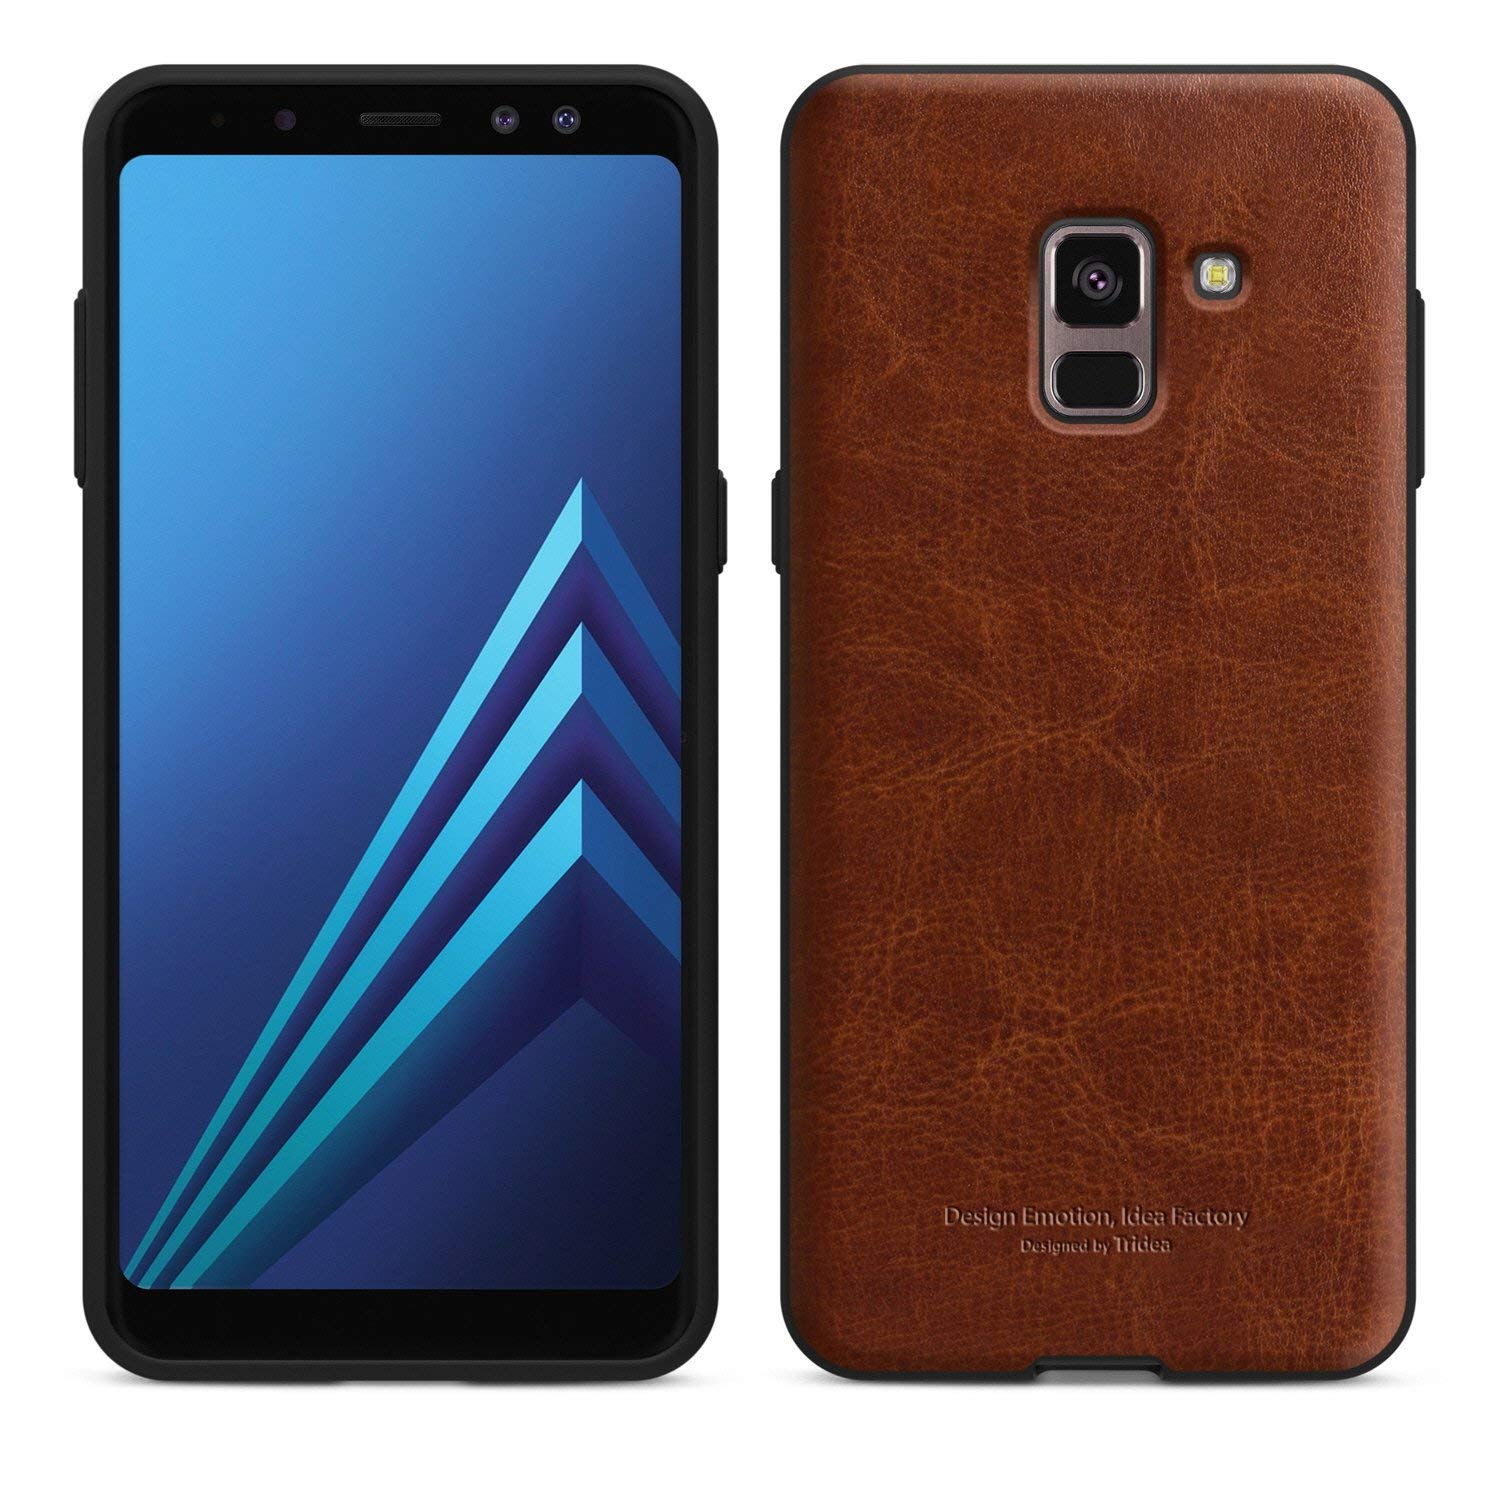 Galaxy A8 (2018) Case [Tridea] Power Guard Premium Synthetic Leather Bumper [Shock Resistant][Scratch-Resistant] Case for Samsung Galaxy A8 2018 [Brown]